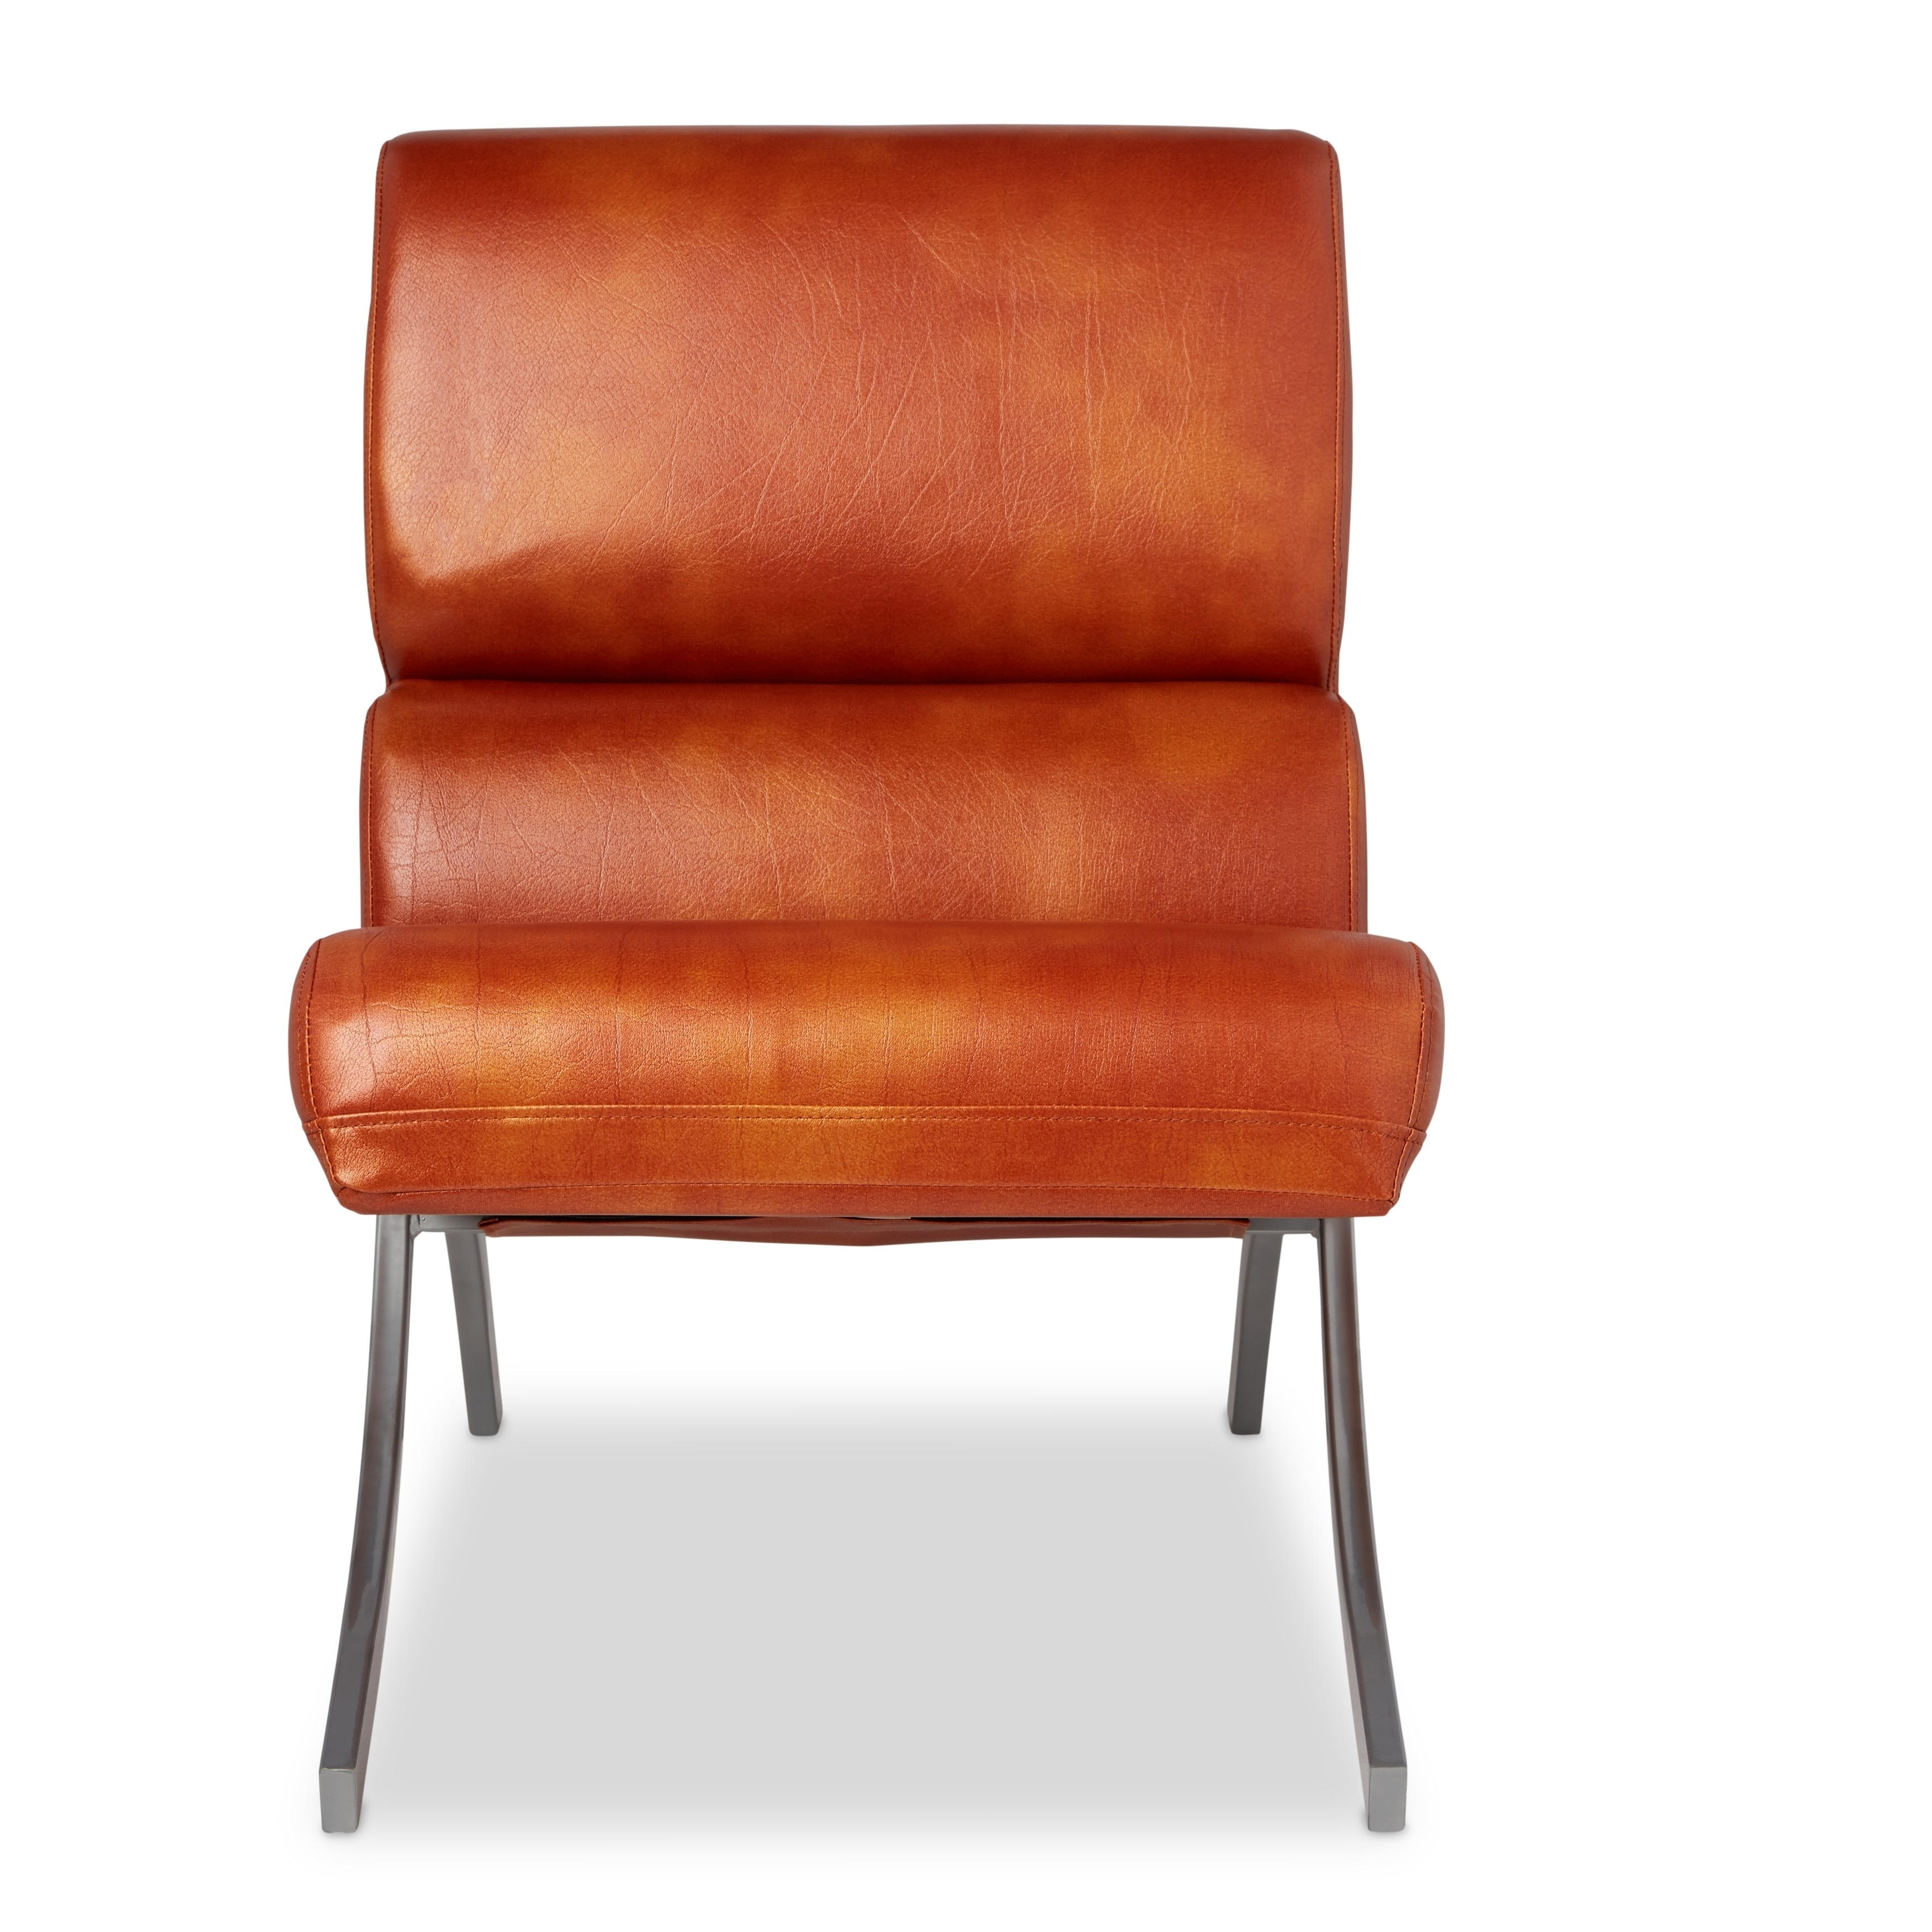 Cheap Faux Leather Chairs 79 Off Frighetto Industries